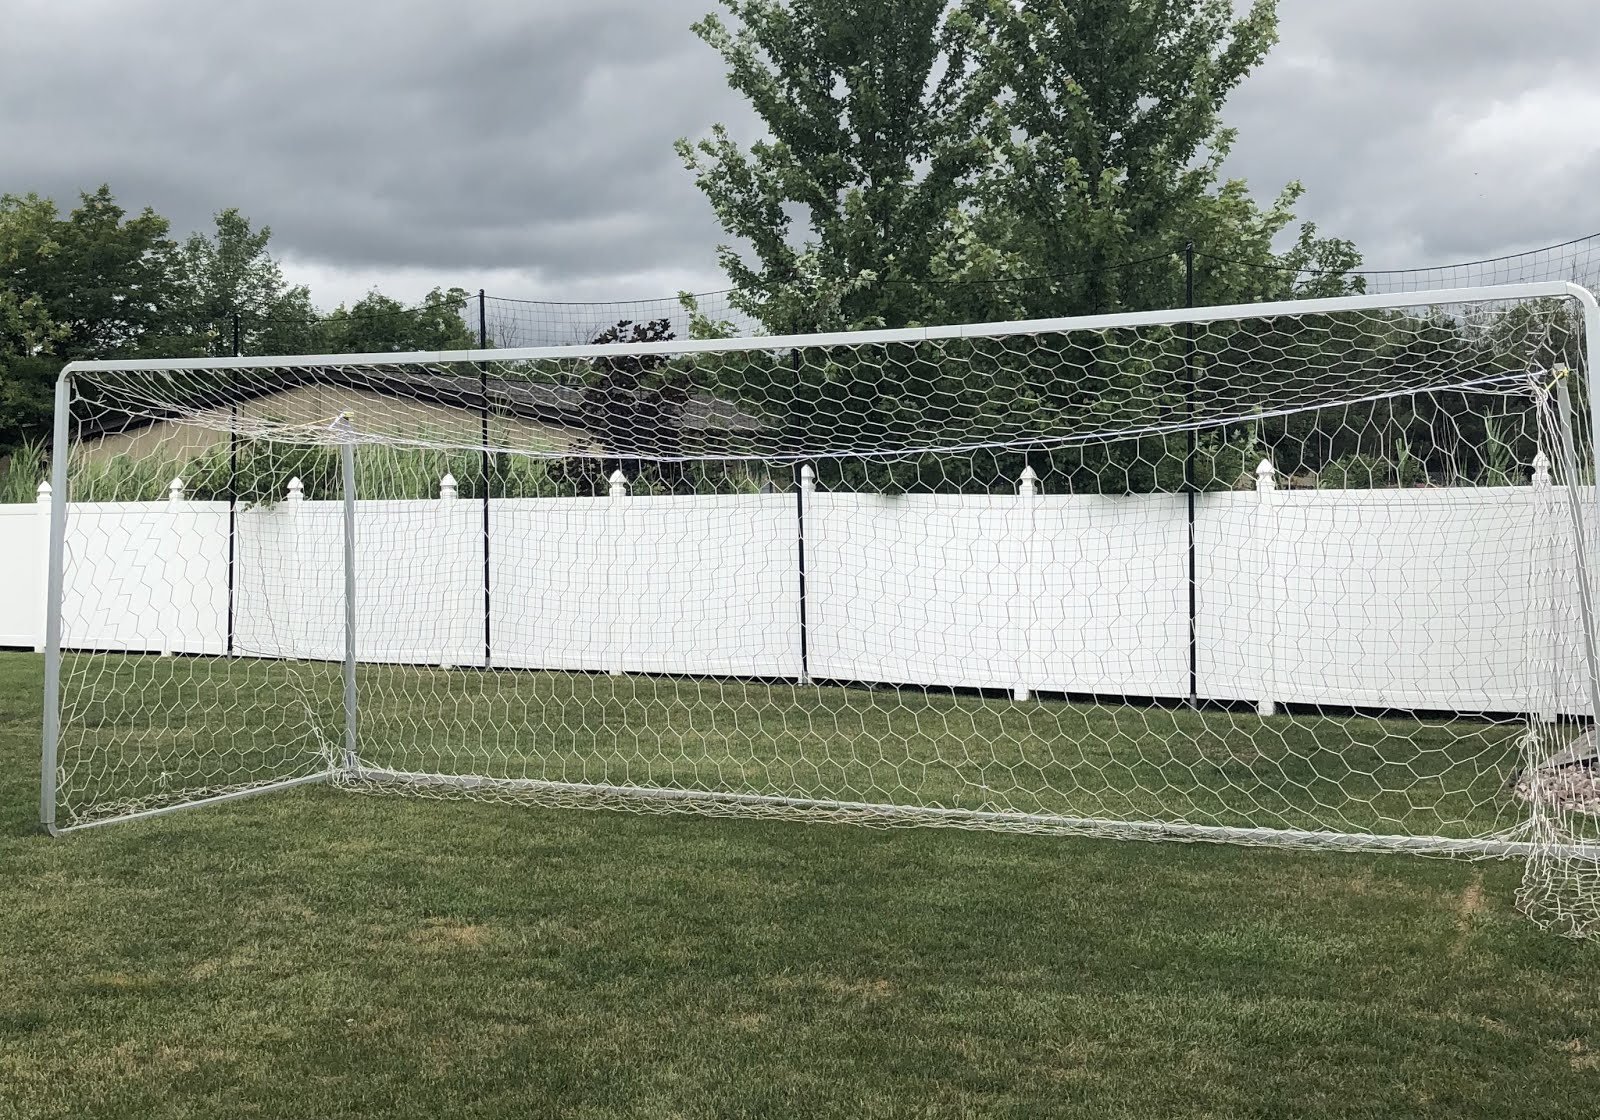 4f0051db1 This netting and materials supply was for a customer in New York that has a  backyard sports court and hockey rink that needed barrier netting around it  to ...